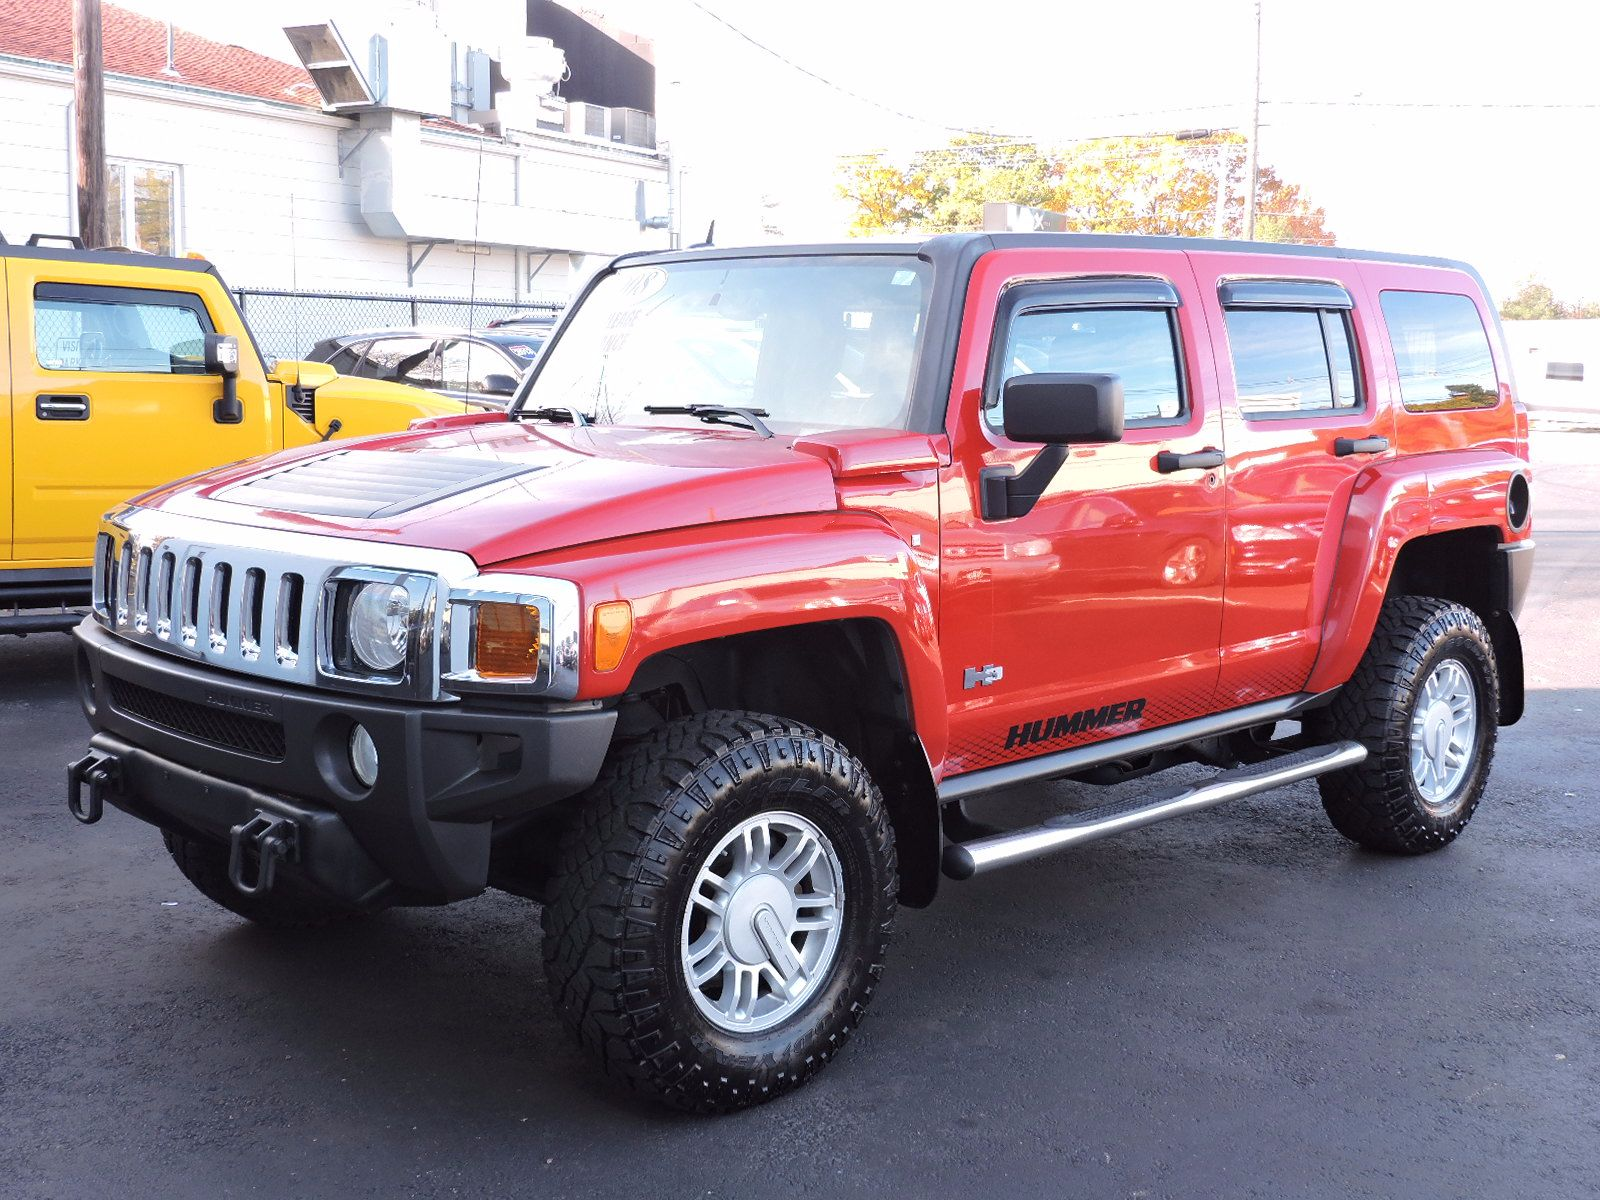 2008 HUMMER H3 - All Wheel Drive